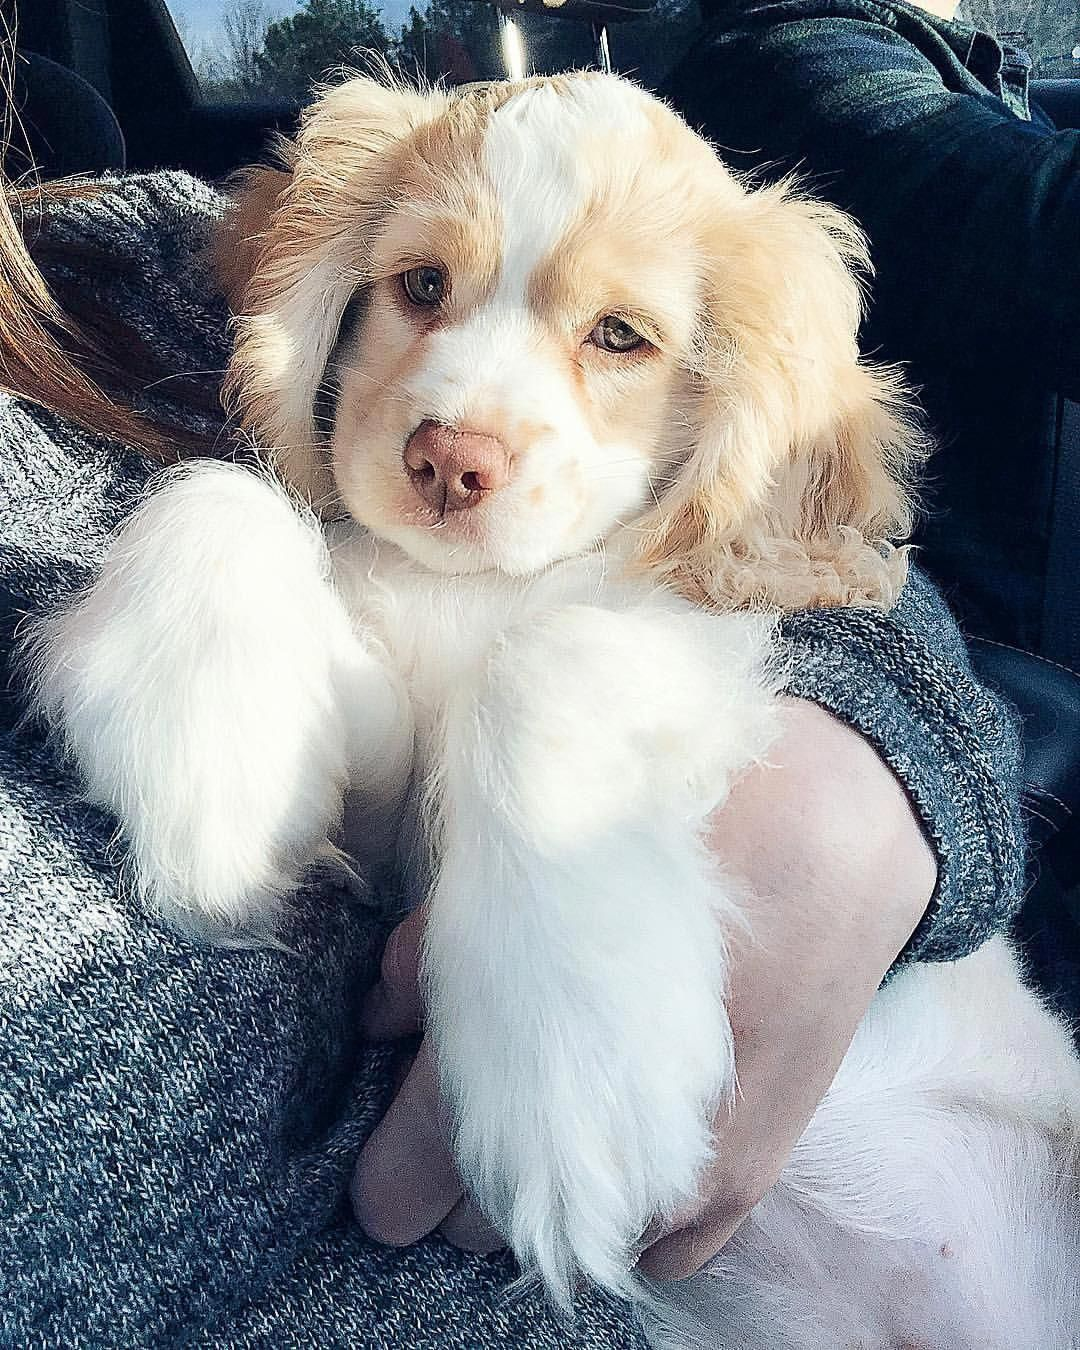 Acquire Terrific Suggestions On Cocker Spaniel Puppies They Are